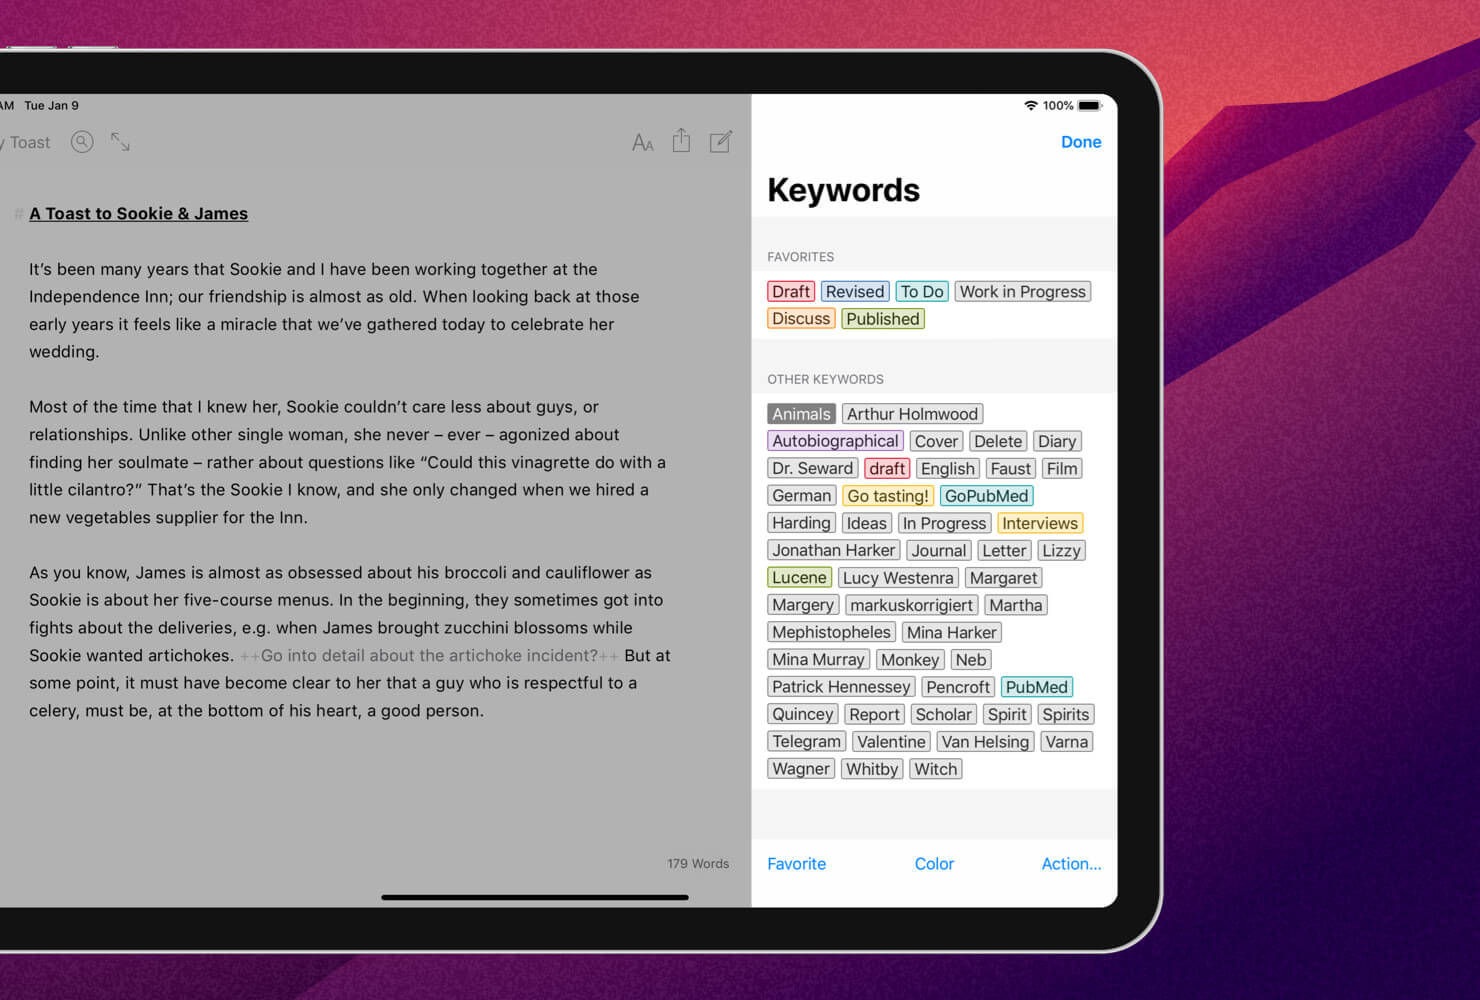 Keyword management on iPad